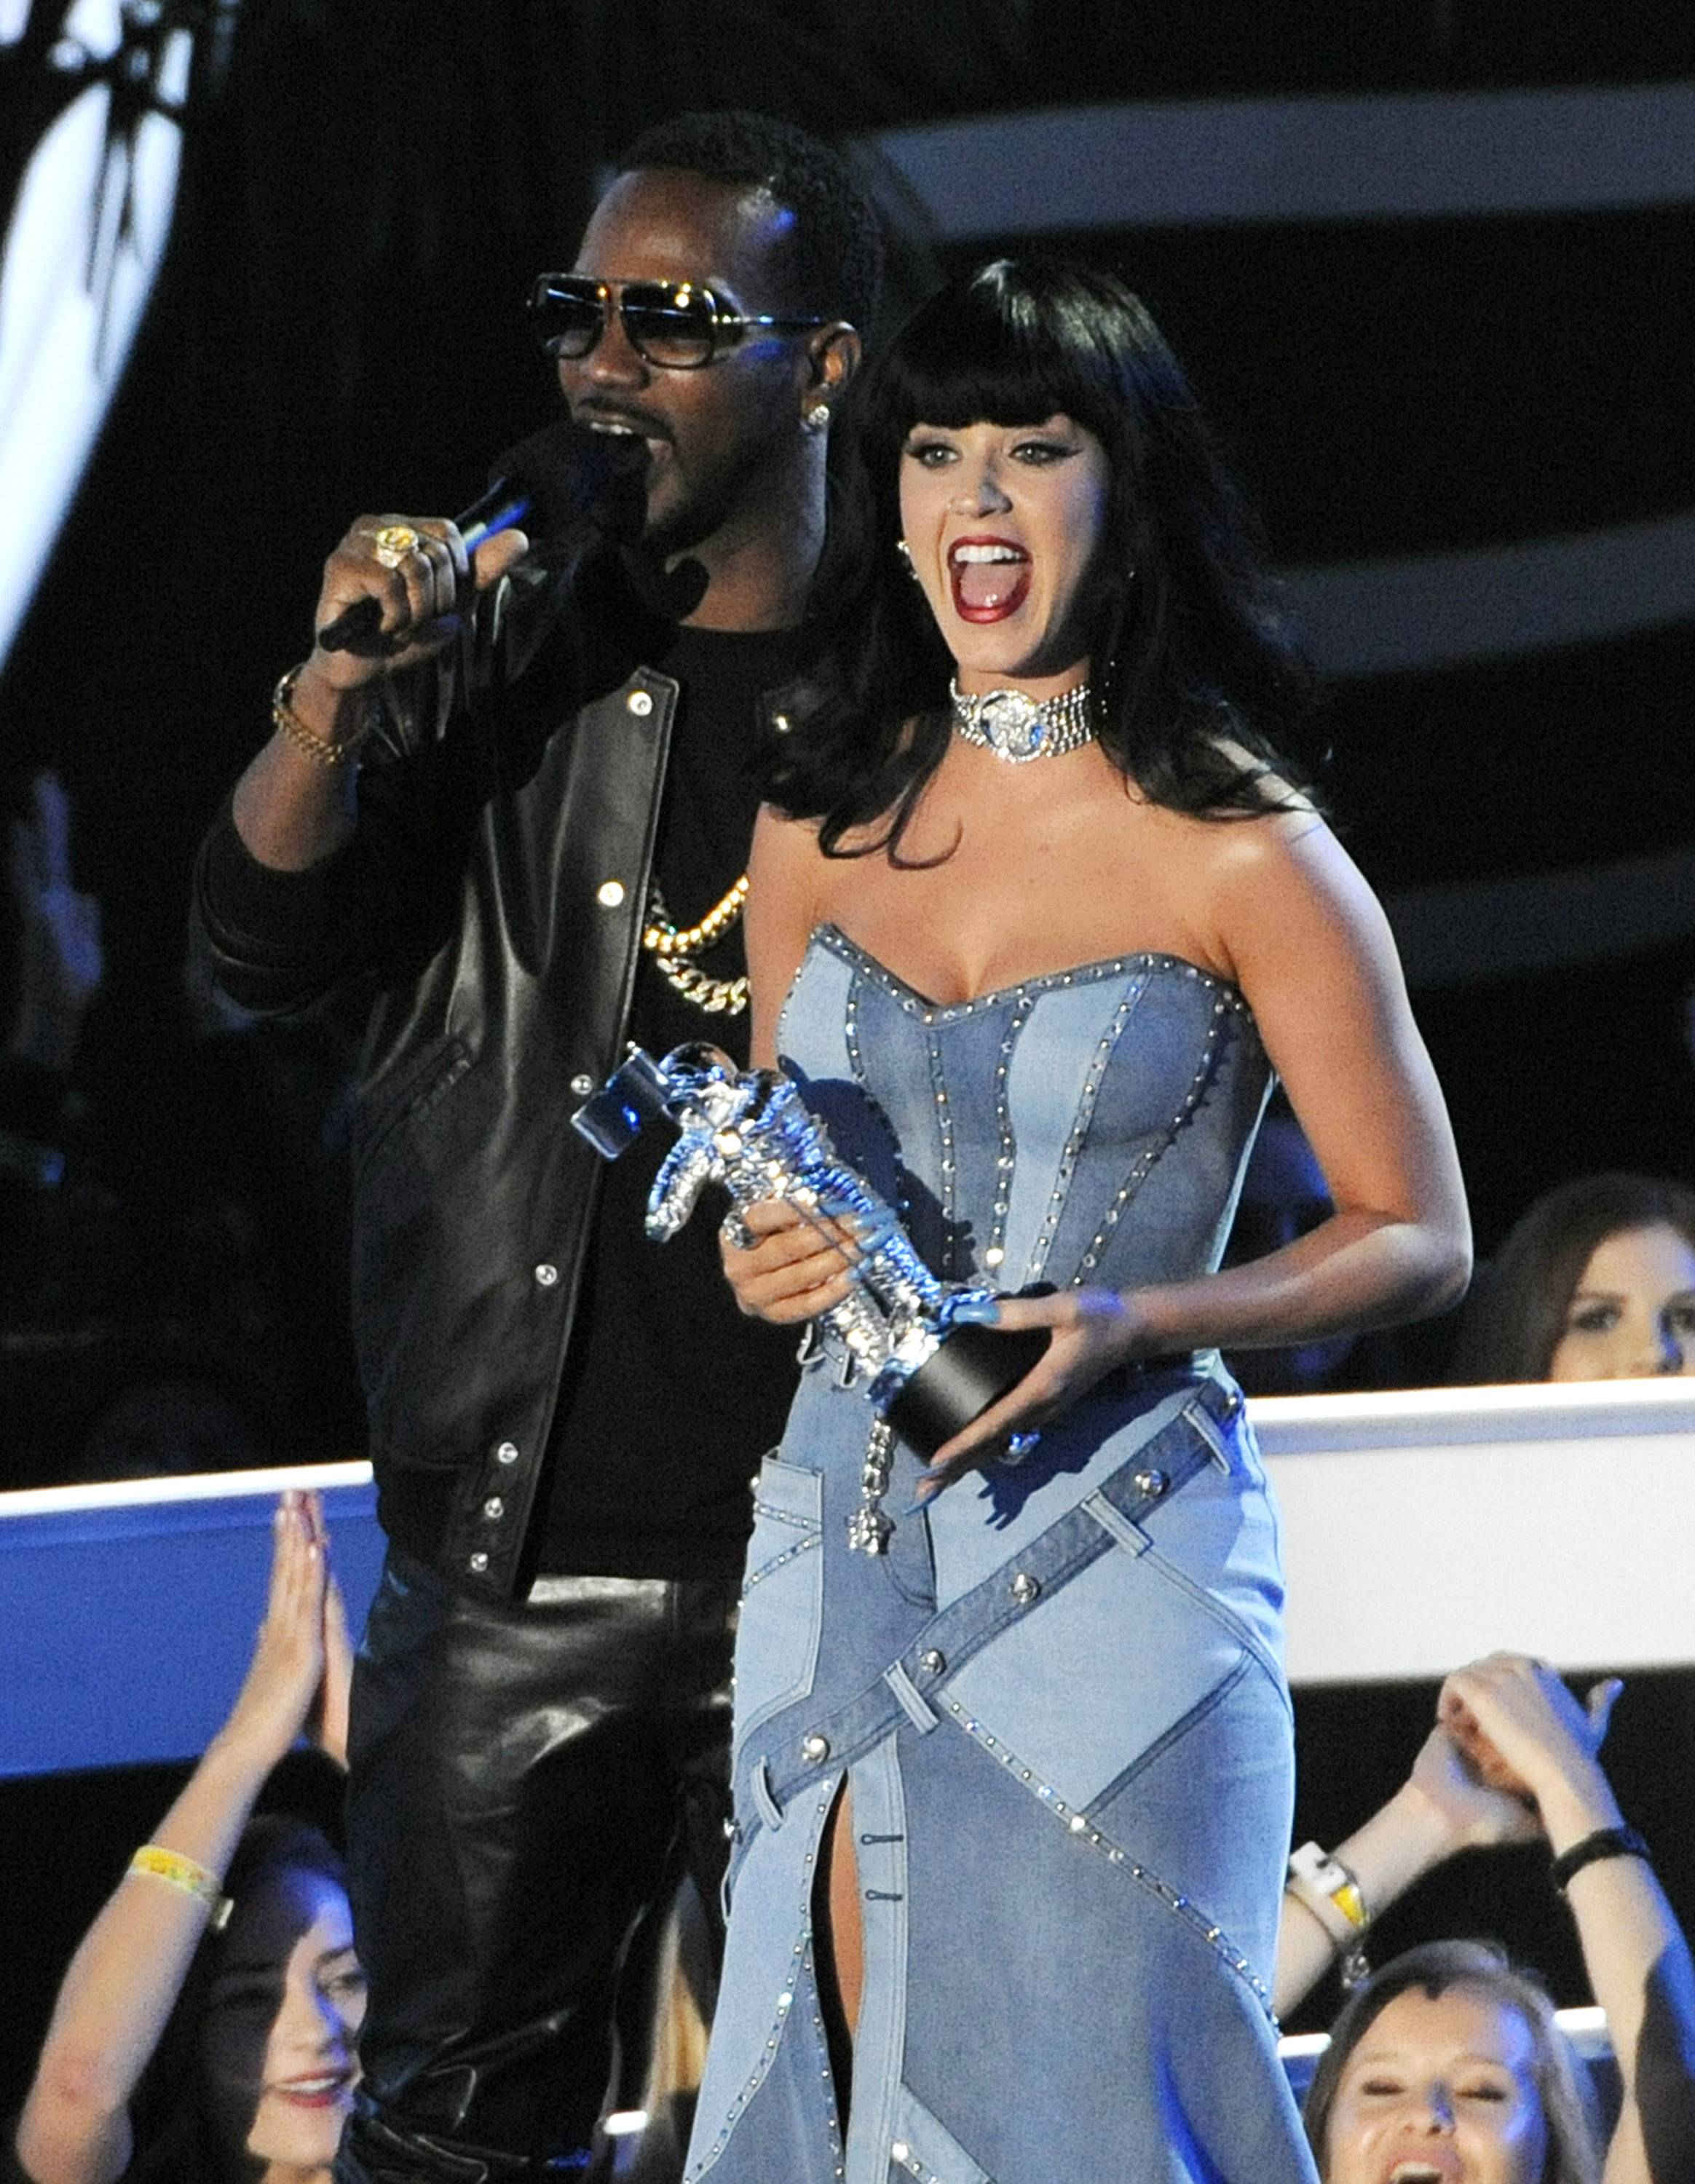 Katy Perry, right, and Juicy J accept the award for Best Female Video at the MTV Video Music Awards.